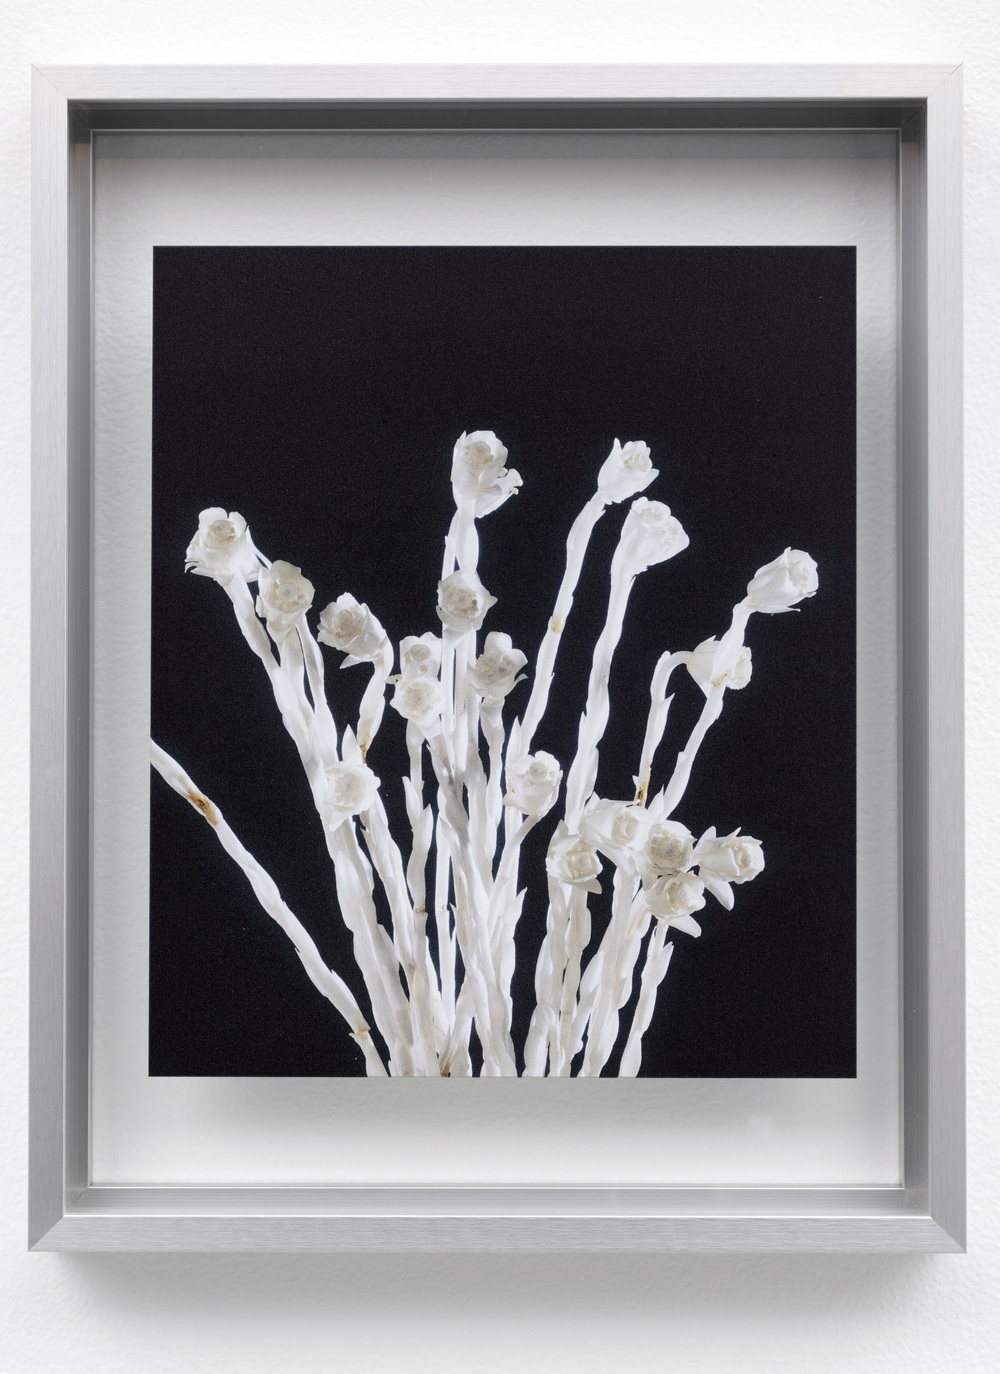 Indian Pipe (Monotropa uniflora) from the to Threptikon series, 2014. Courtesy of the Archives of Rudolph and Leopold Blaschka and the Harvard Ware Collection of Blaschka Glass Models of Plants